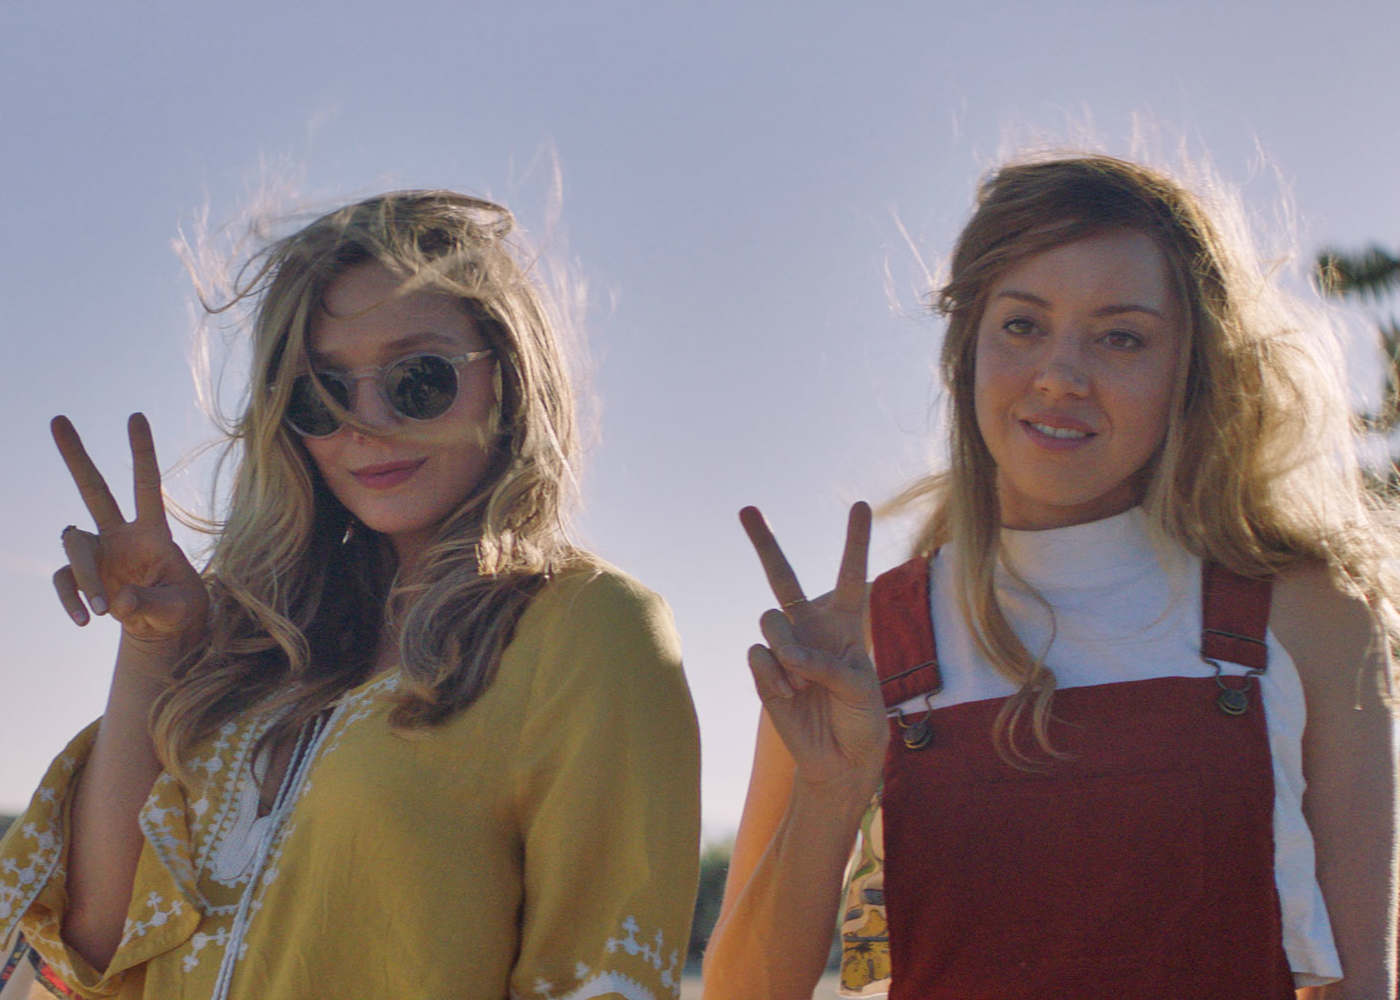 LFF 2017: Aubrey Plaza Shines in the Whip Smart Ingrid Goes West